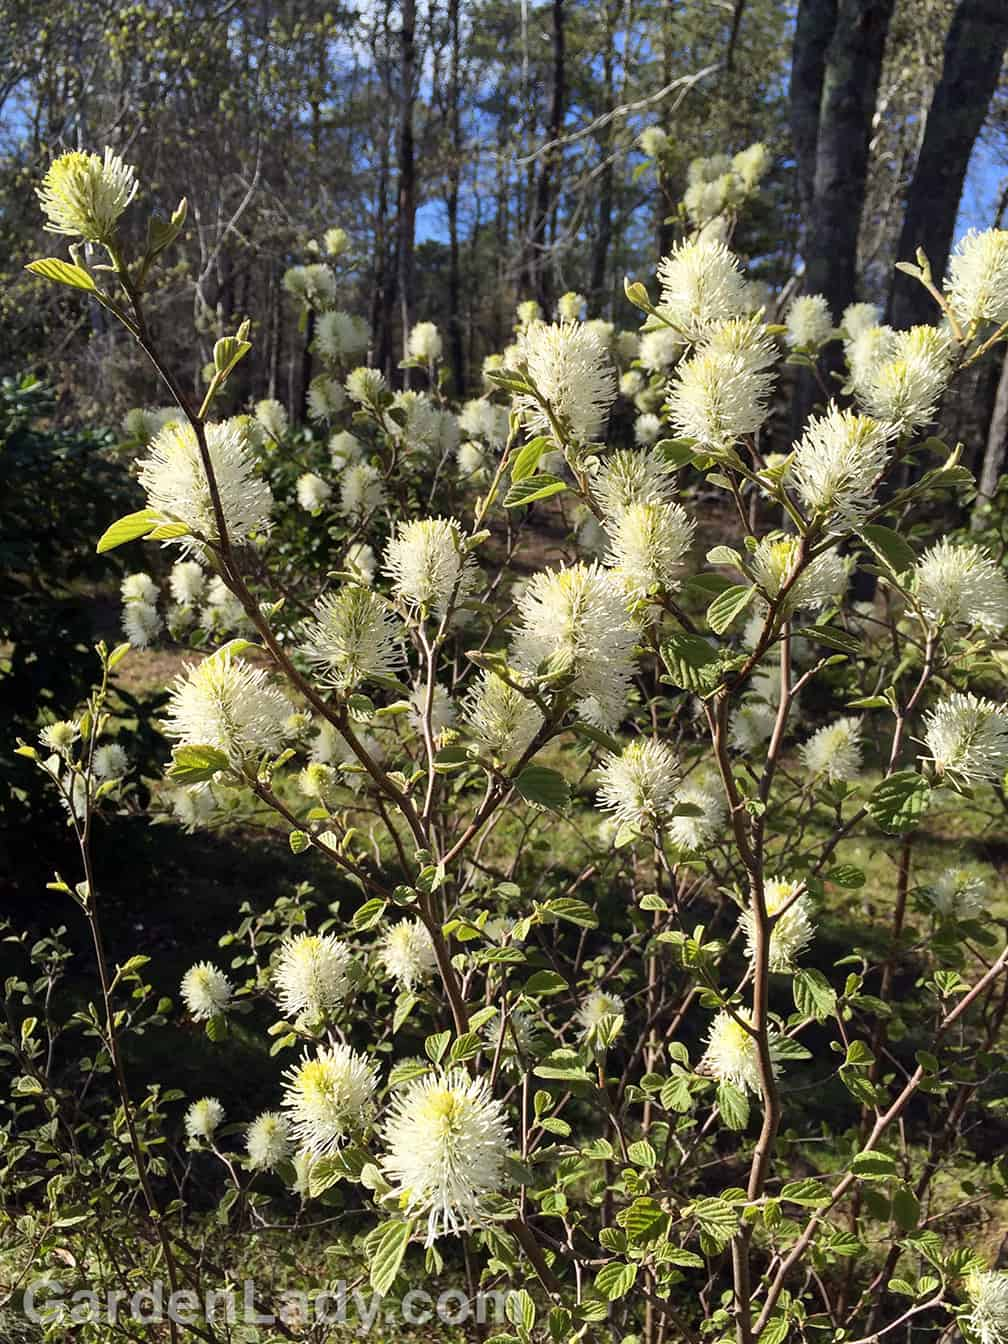 For several weeks in the early spring Fothergilla flowers are also cheerful.